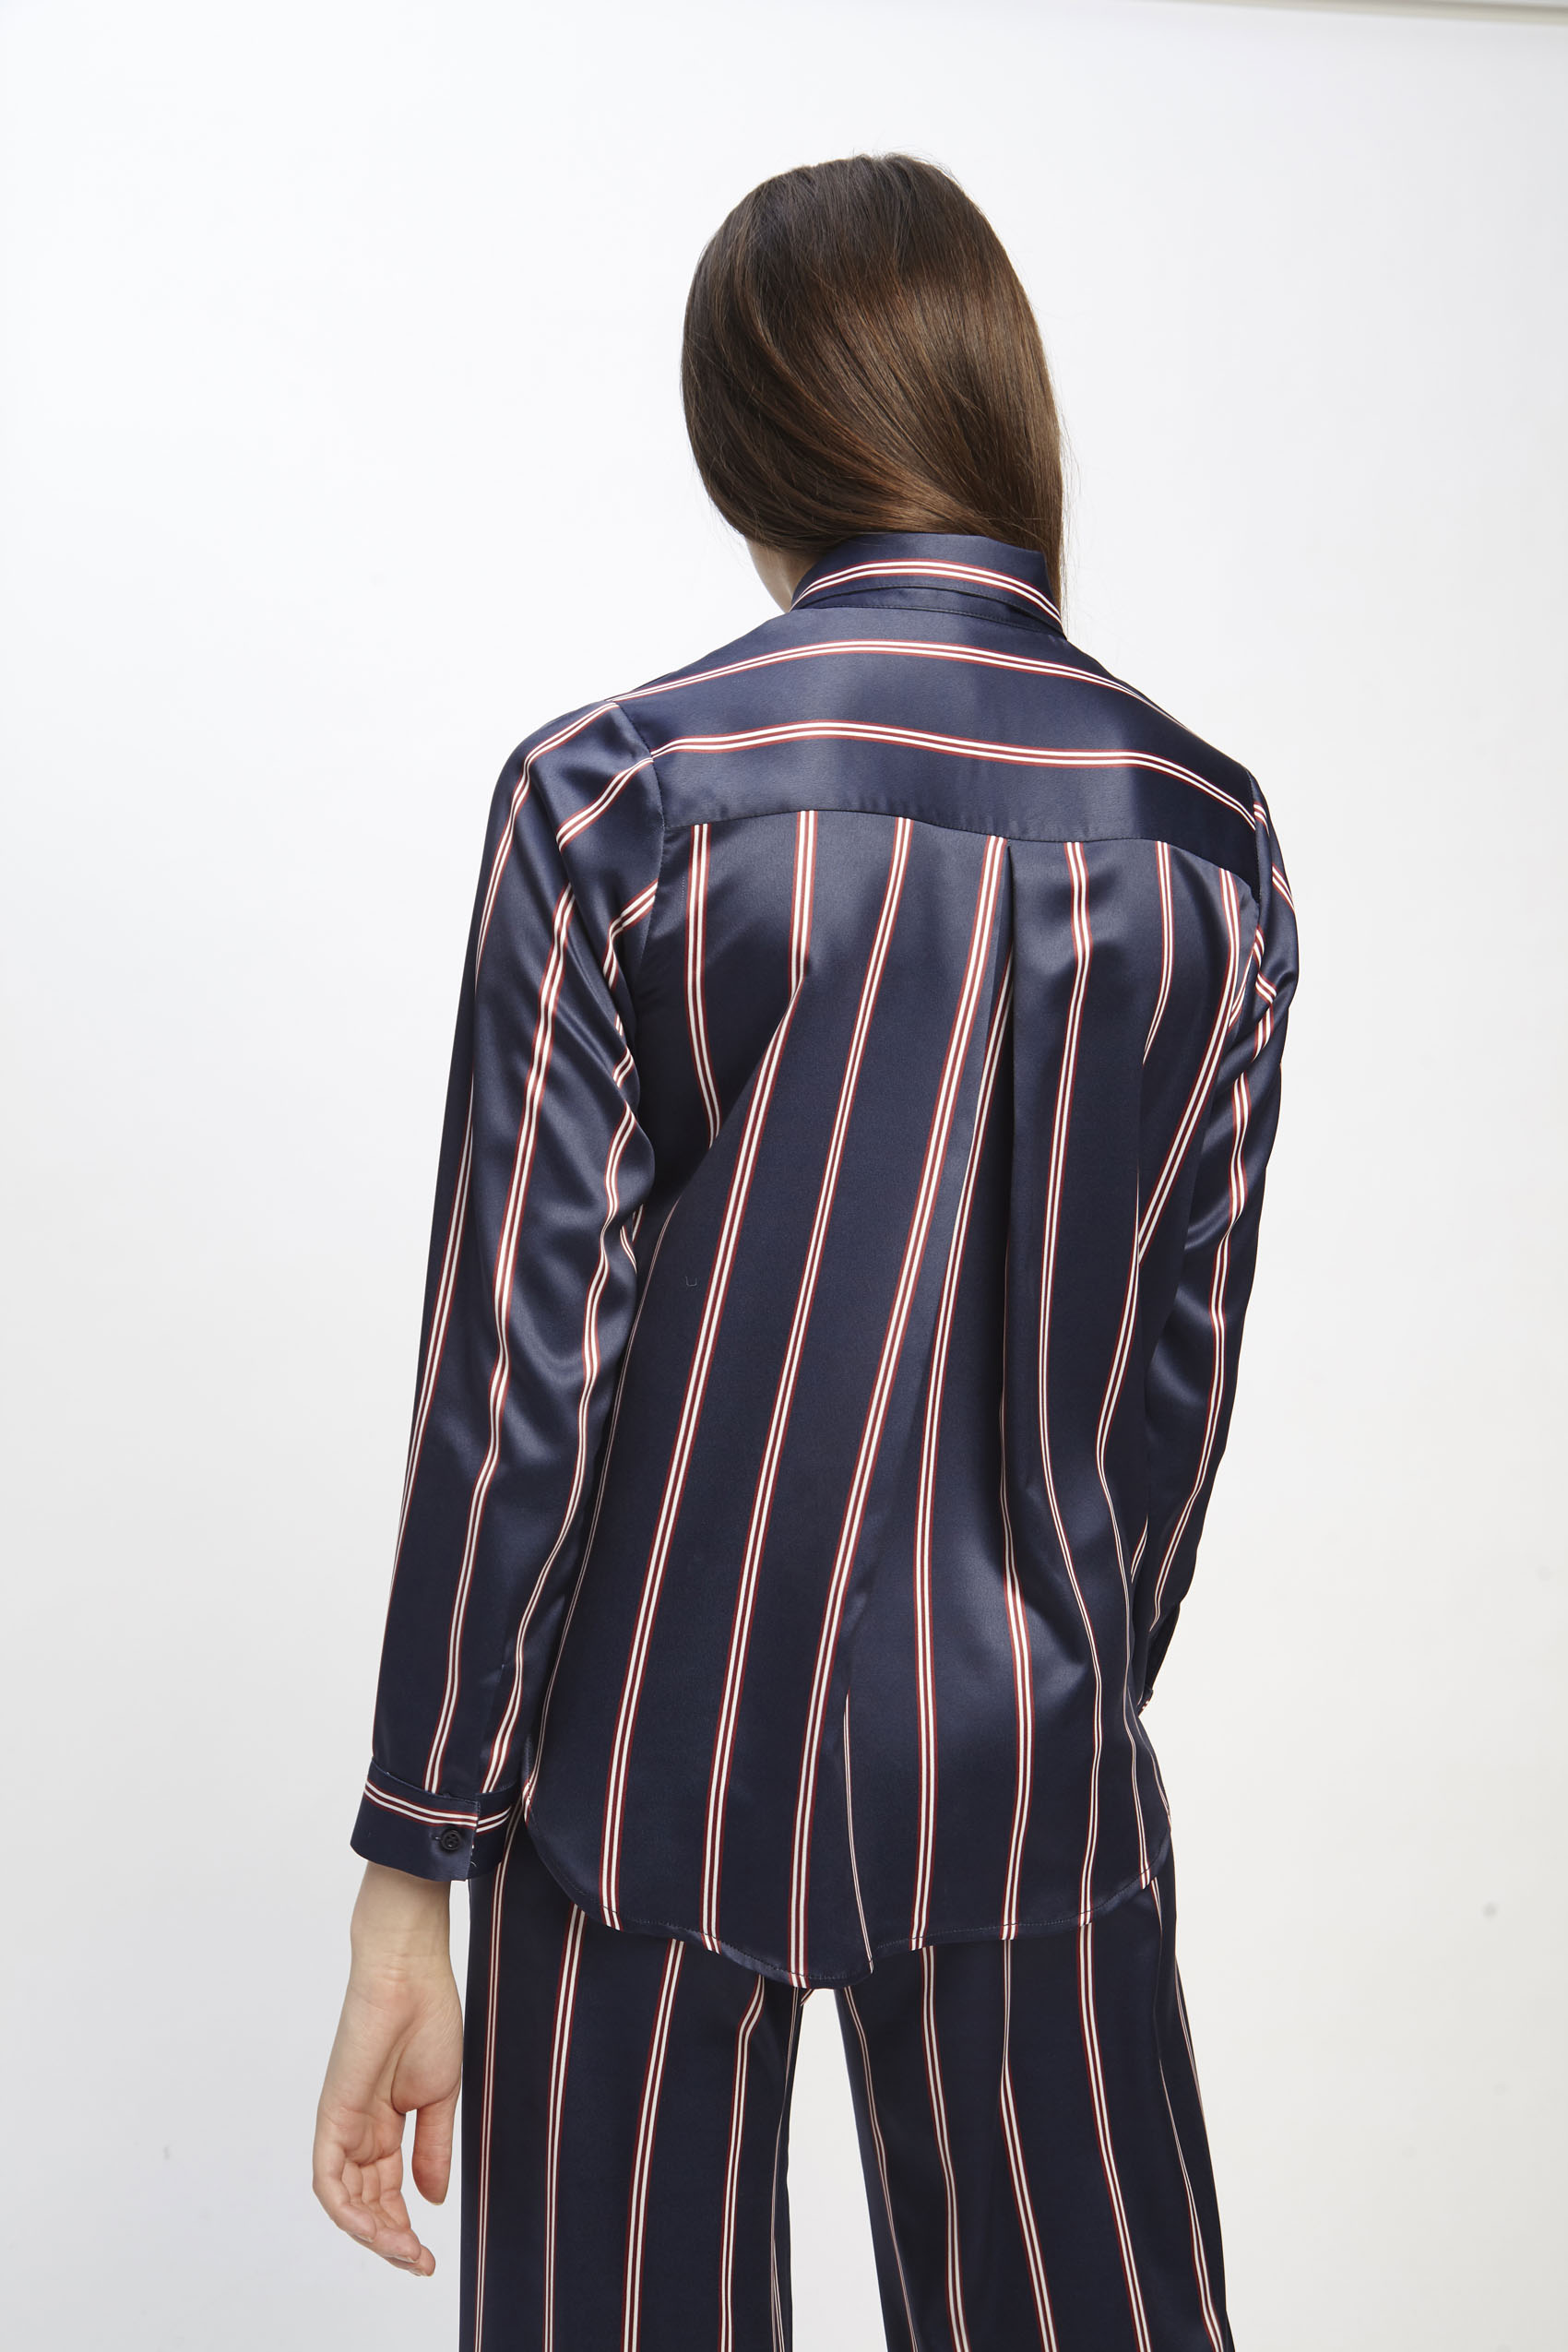 awada_camisa-erin_06-23-2019__picture-1875